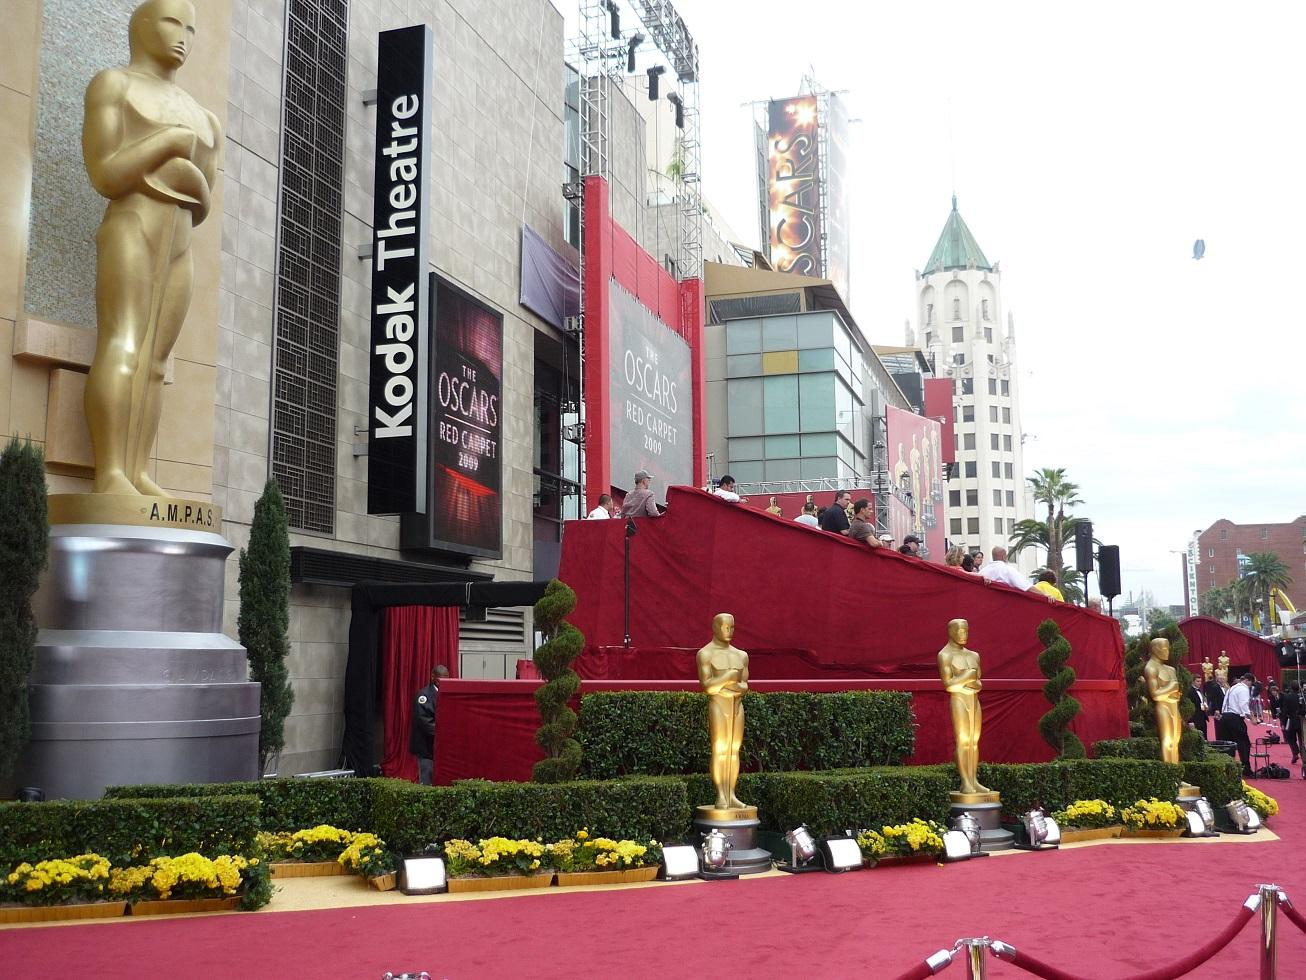 The Oscar ceremony will take place at Hollywood's Kodak Theatre on Feb. 26.